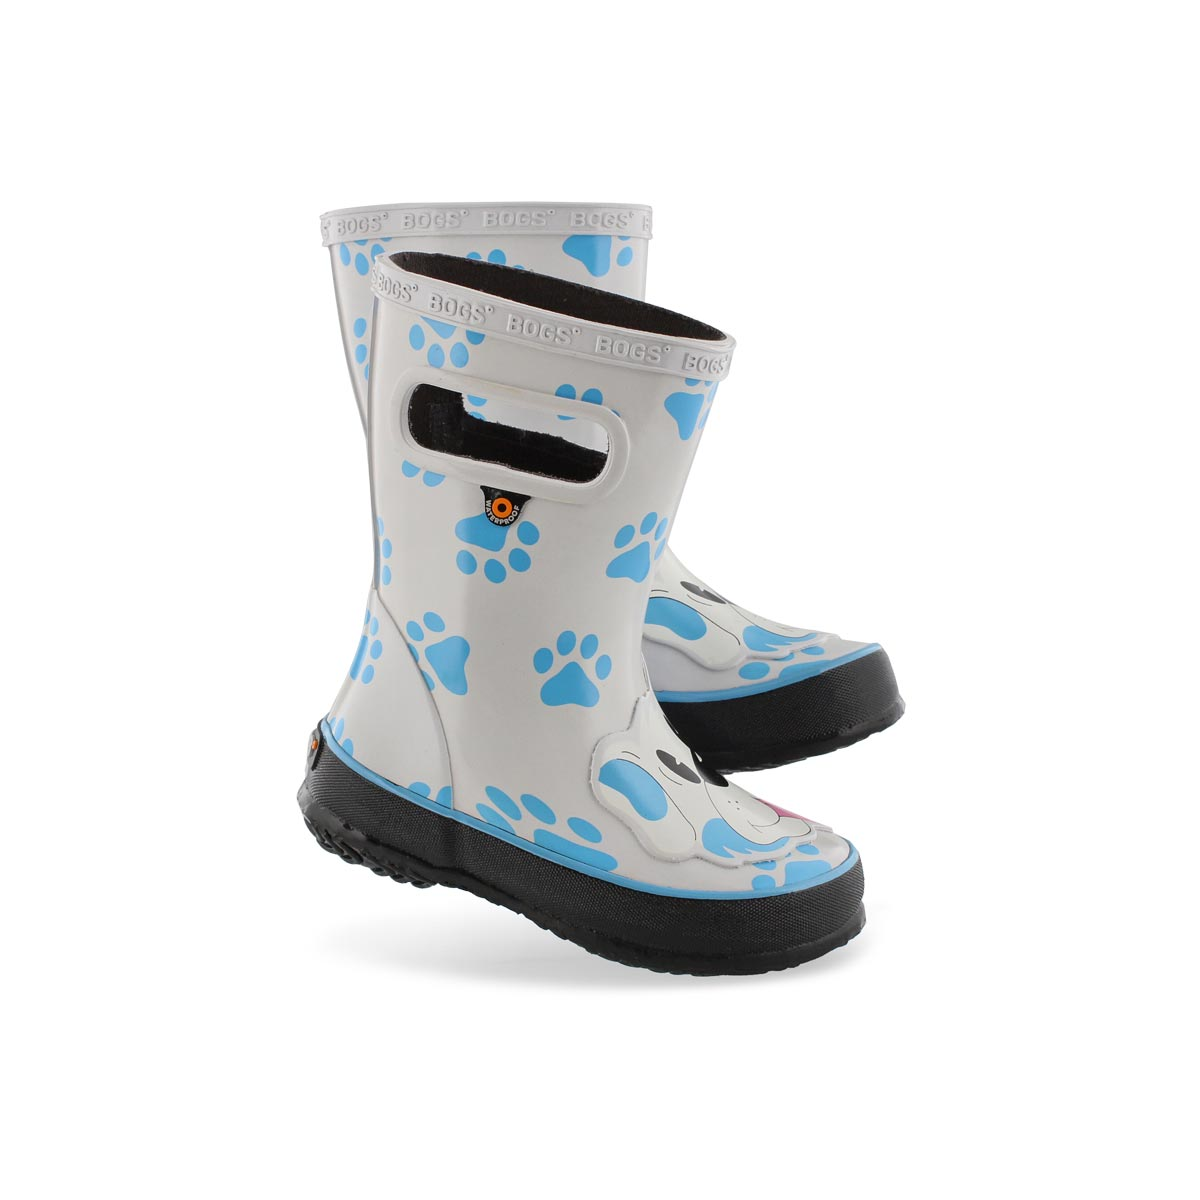 Infs Skipper Animals dogs gry mlti boot